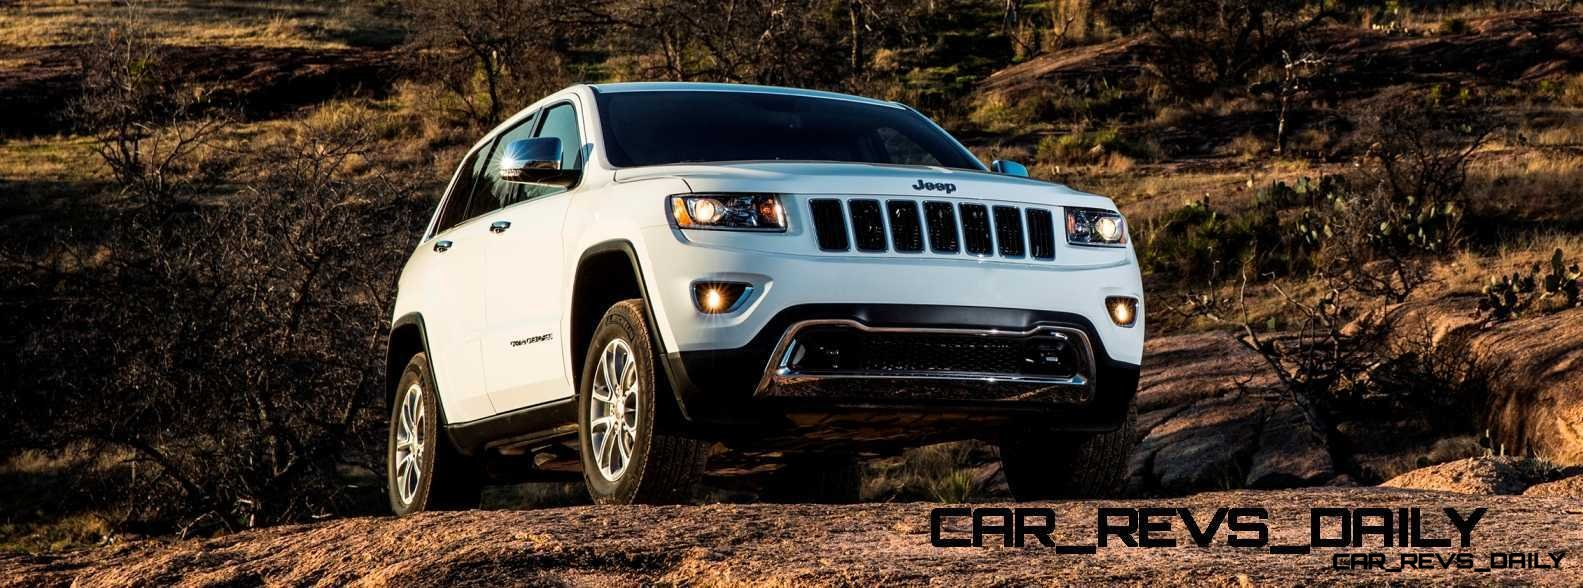 2014 jeep grand cherokee limited. Cars Review. Best American Auto & Cars Review